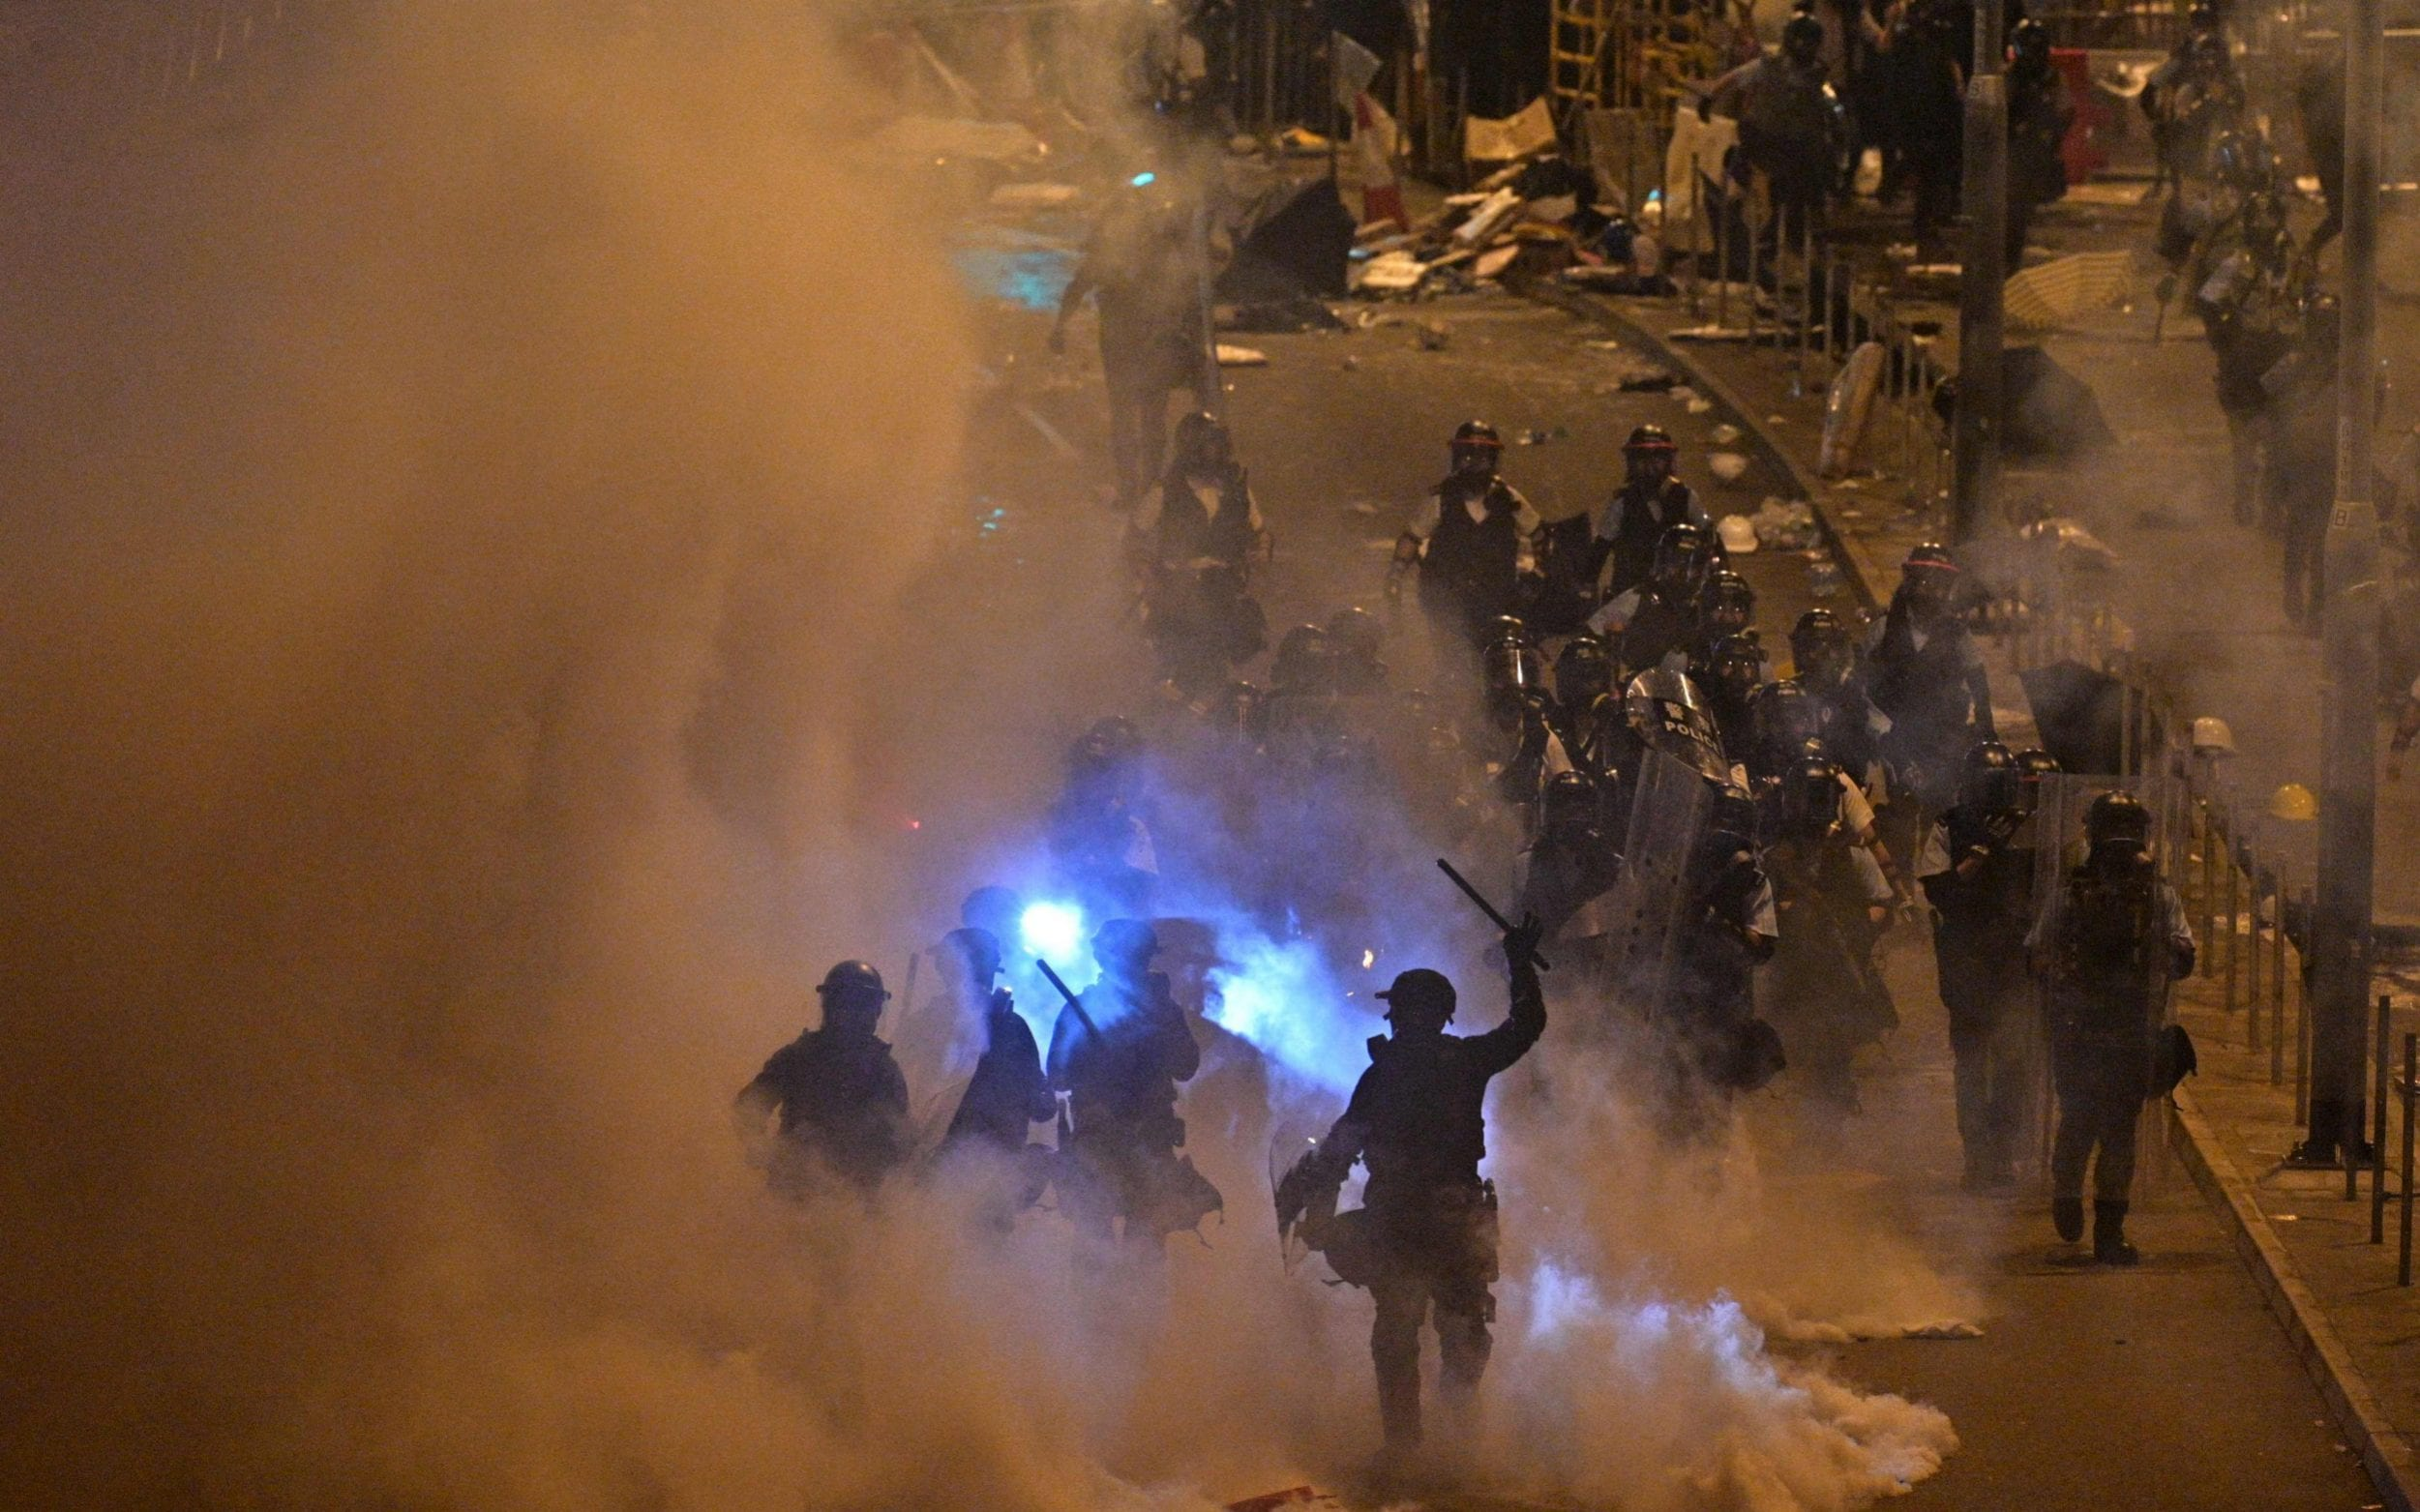 World watches Chinas reaction to Hong Kong protests as fears of military involvement grow